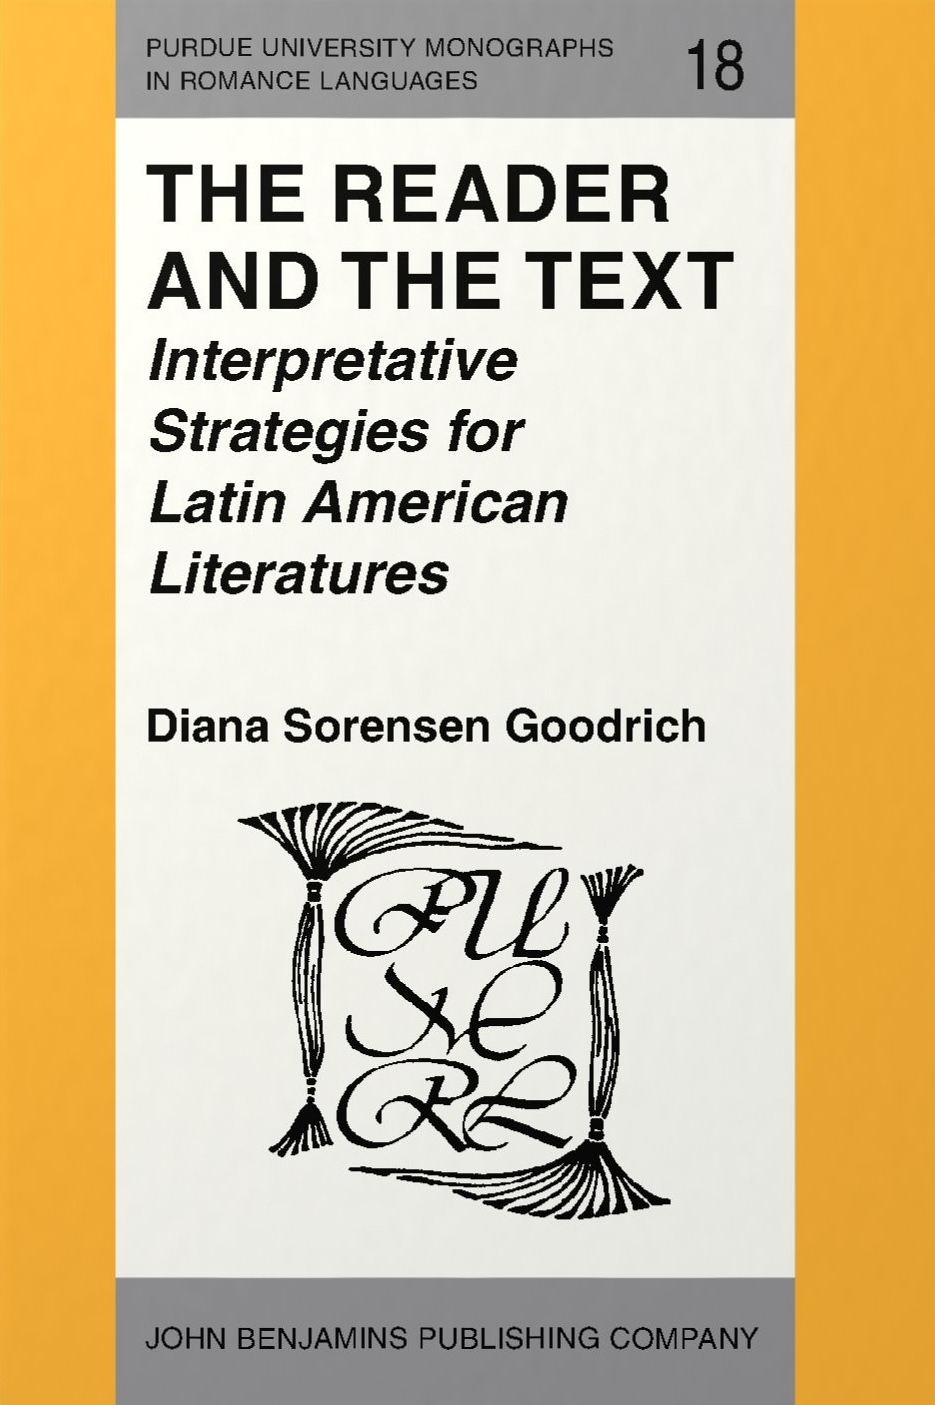 """The Reader and the Text: Interpretive Strategies for Latin American Literatures"""